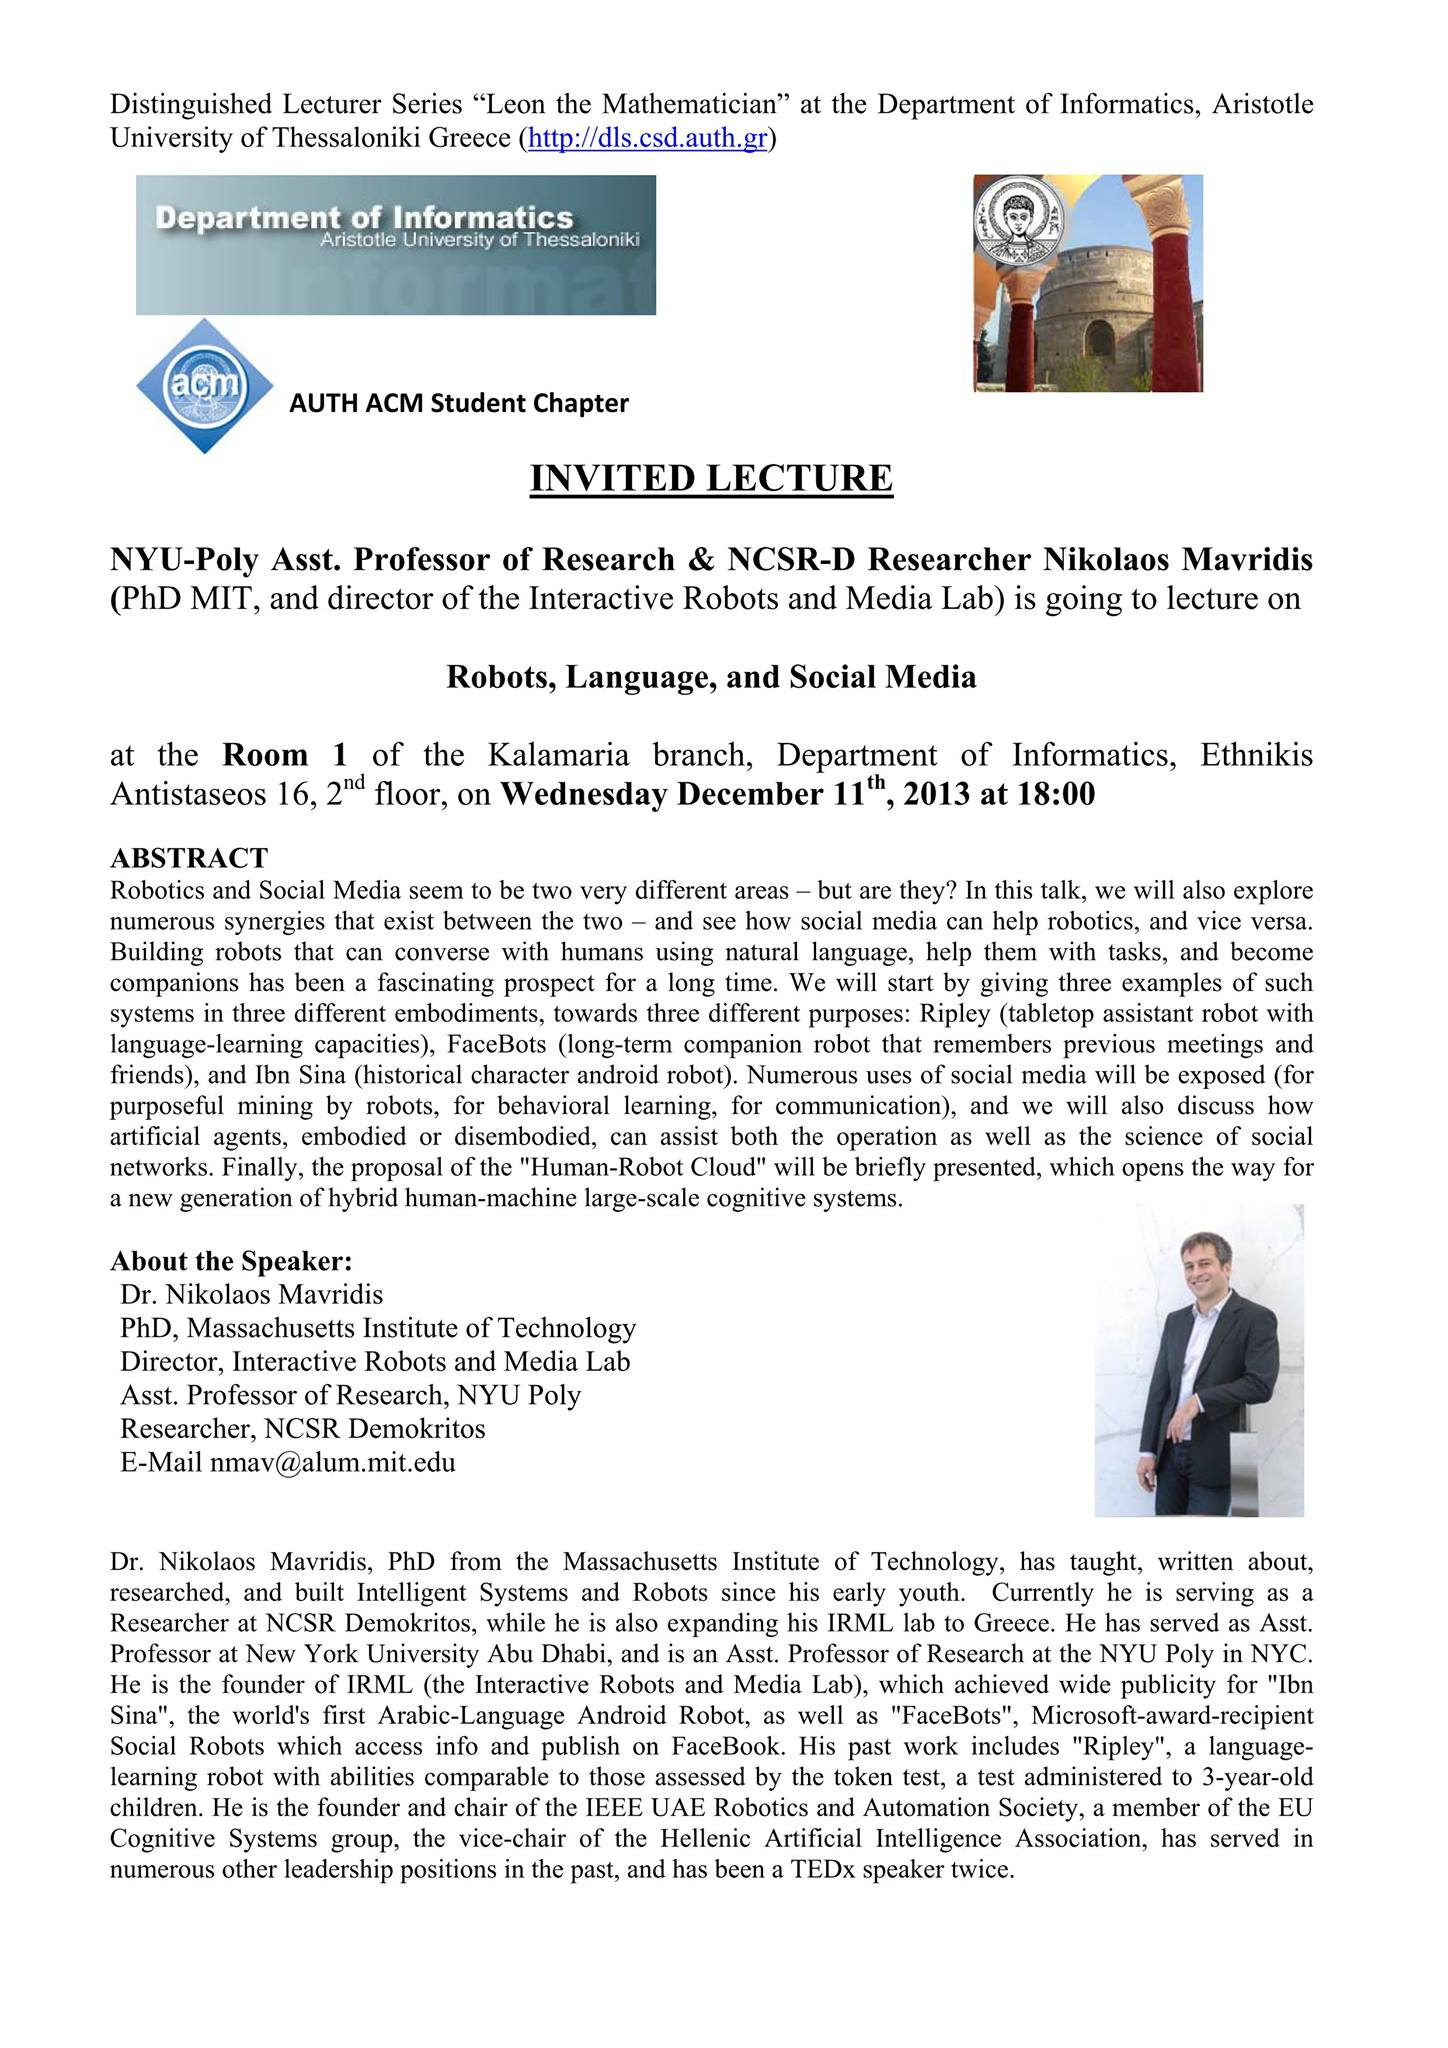 Invited-Lecture-Robots-Language-and-Social-Media-Poster